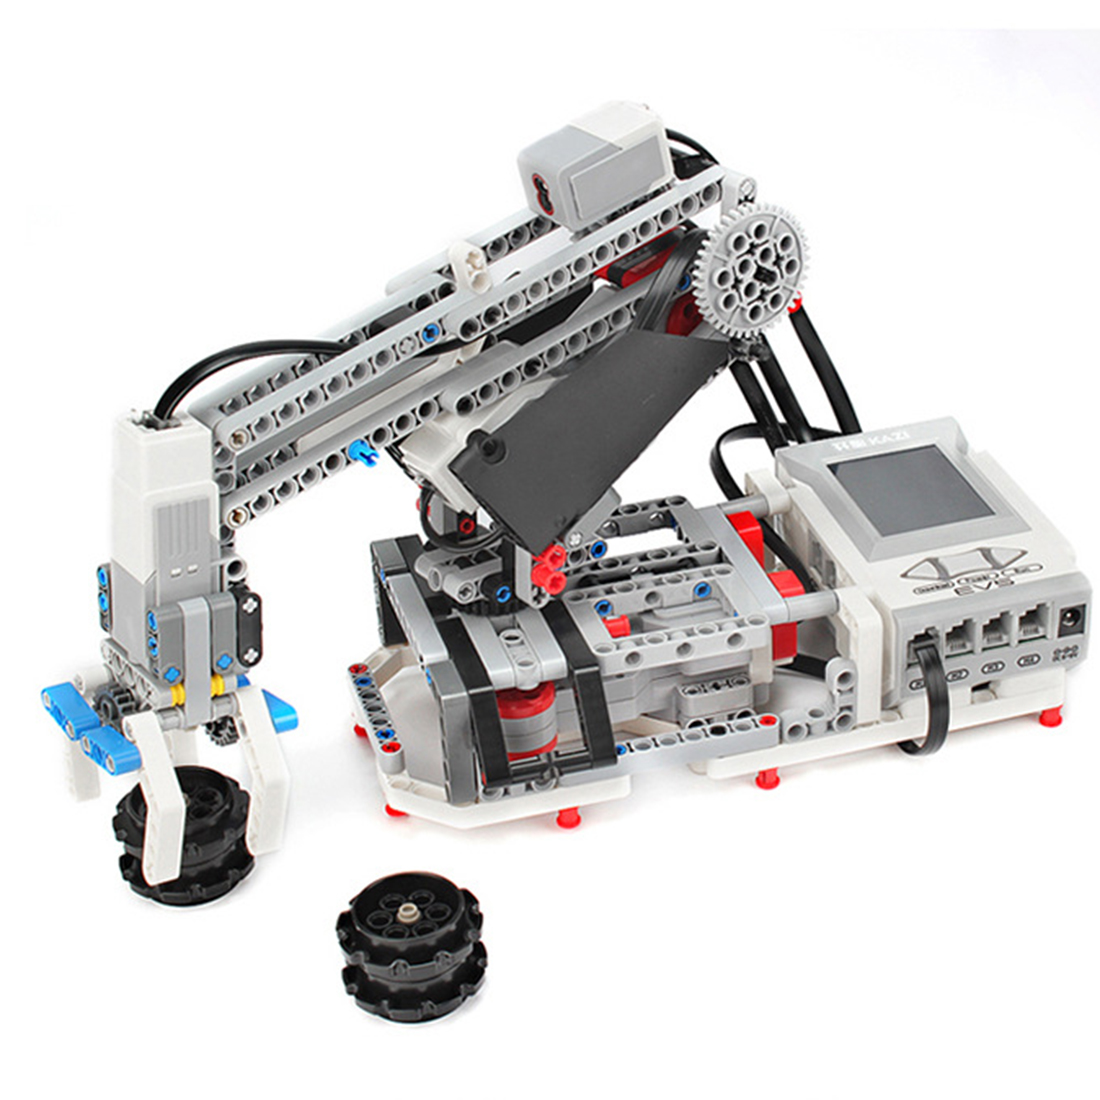 2020 New Programmable Building Block Assembly Robot Kit DIY Multifunctional Educational Learning Kit Toy Games Test Kit